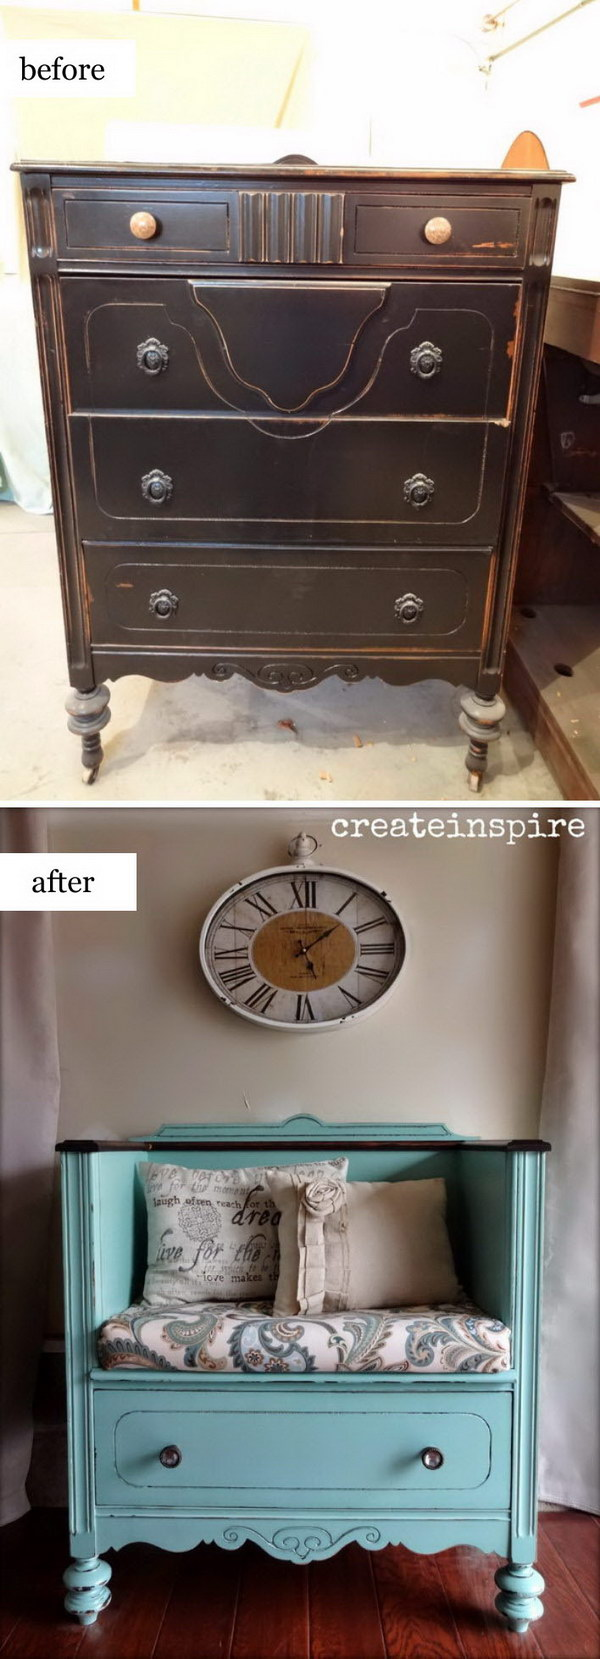 40 Awesome Makeovers Clever Ways With Tutorials To